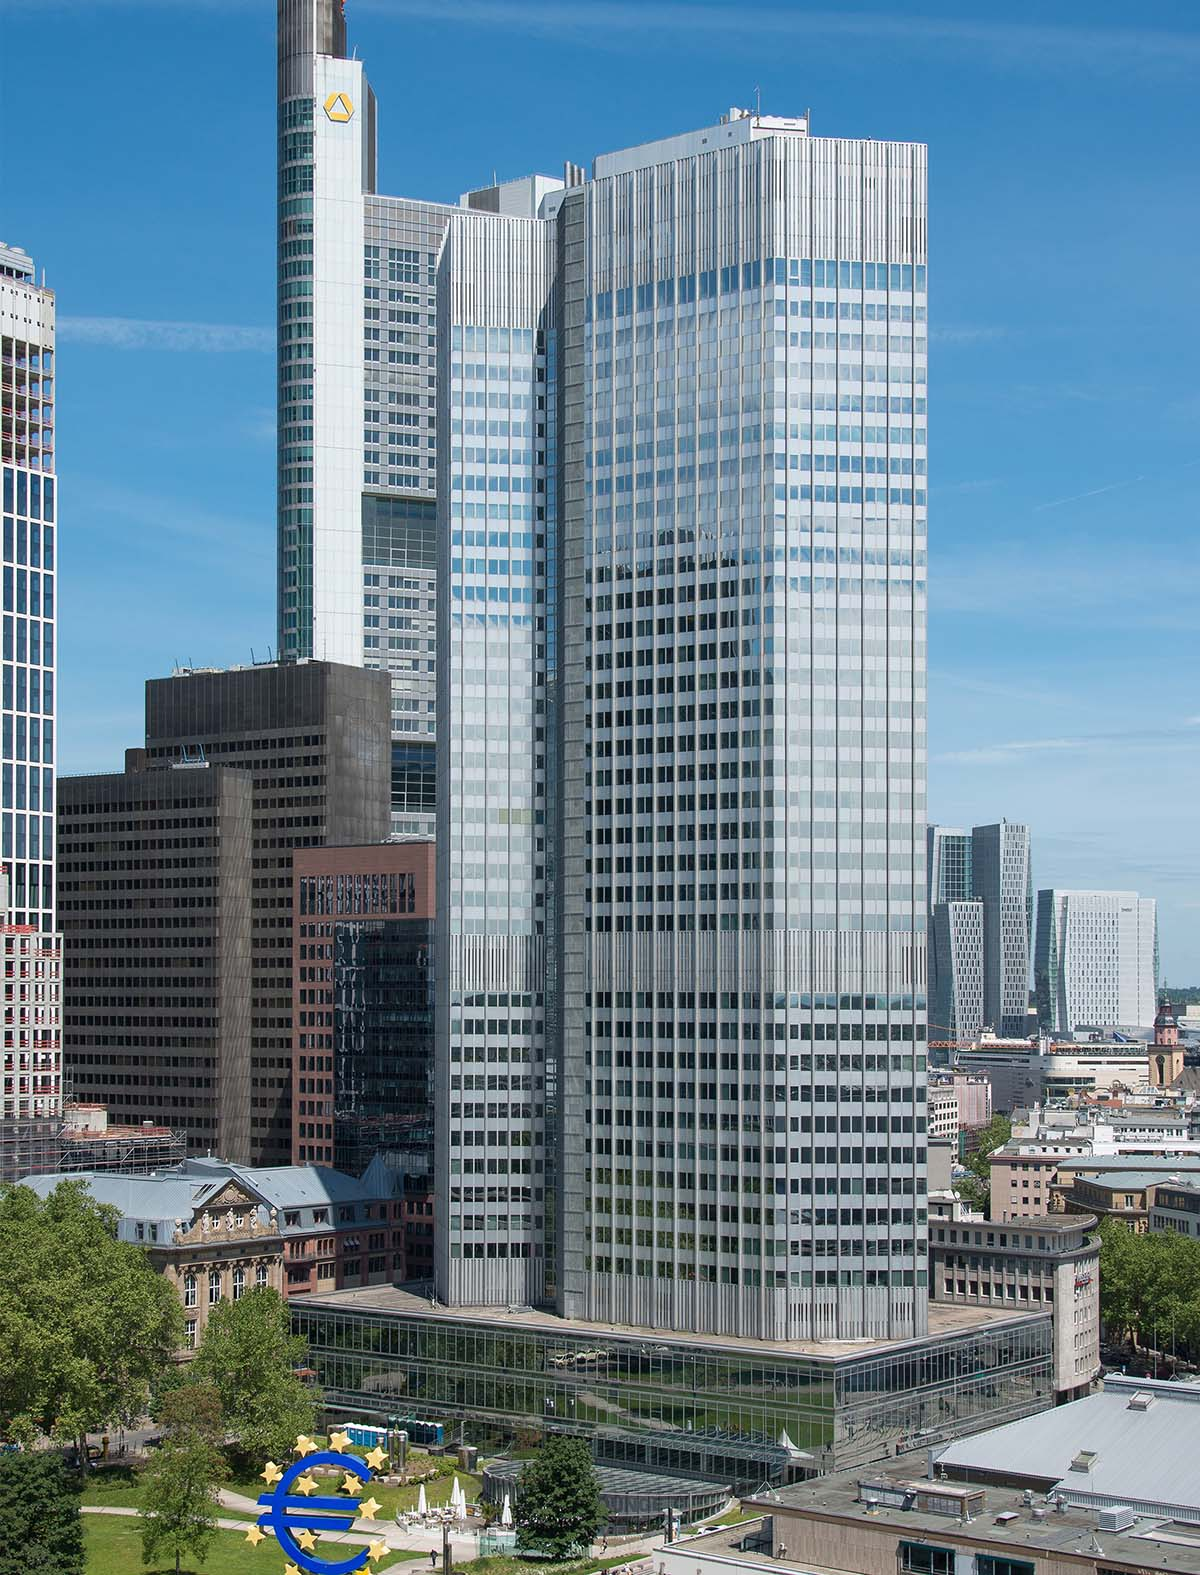 Figure7 : EuroTower, Frankfurt (©Epizentrum)